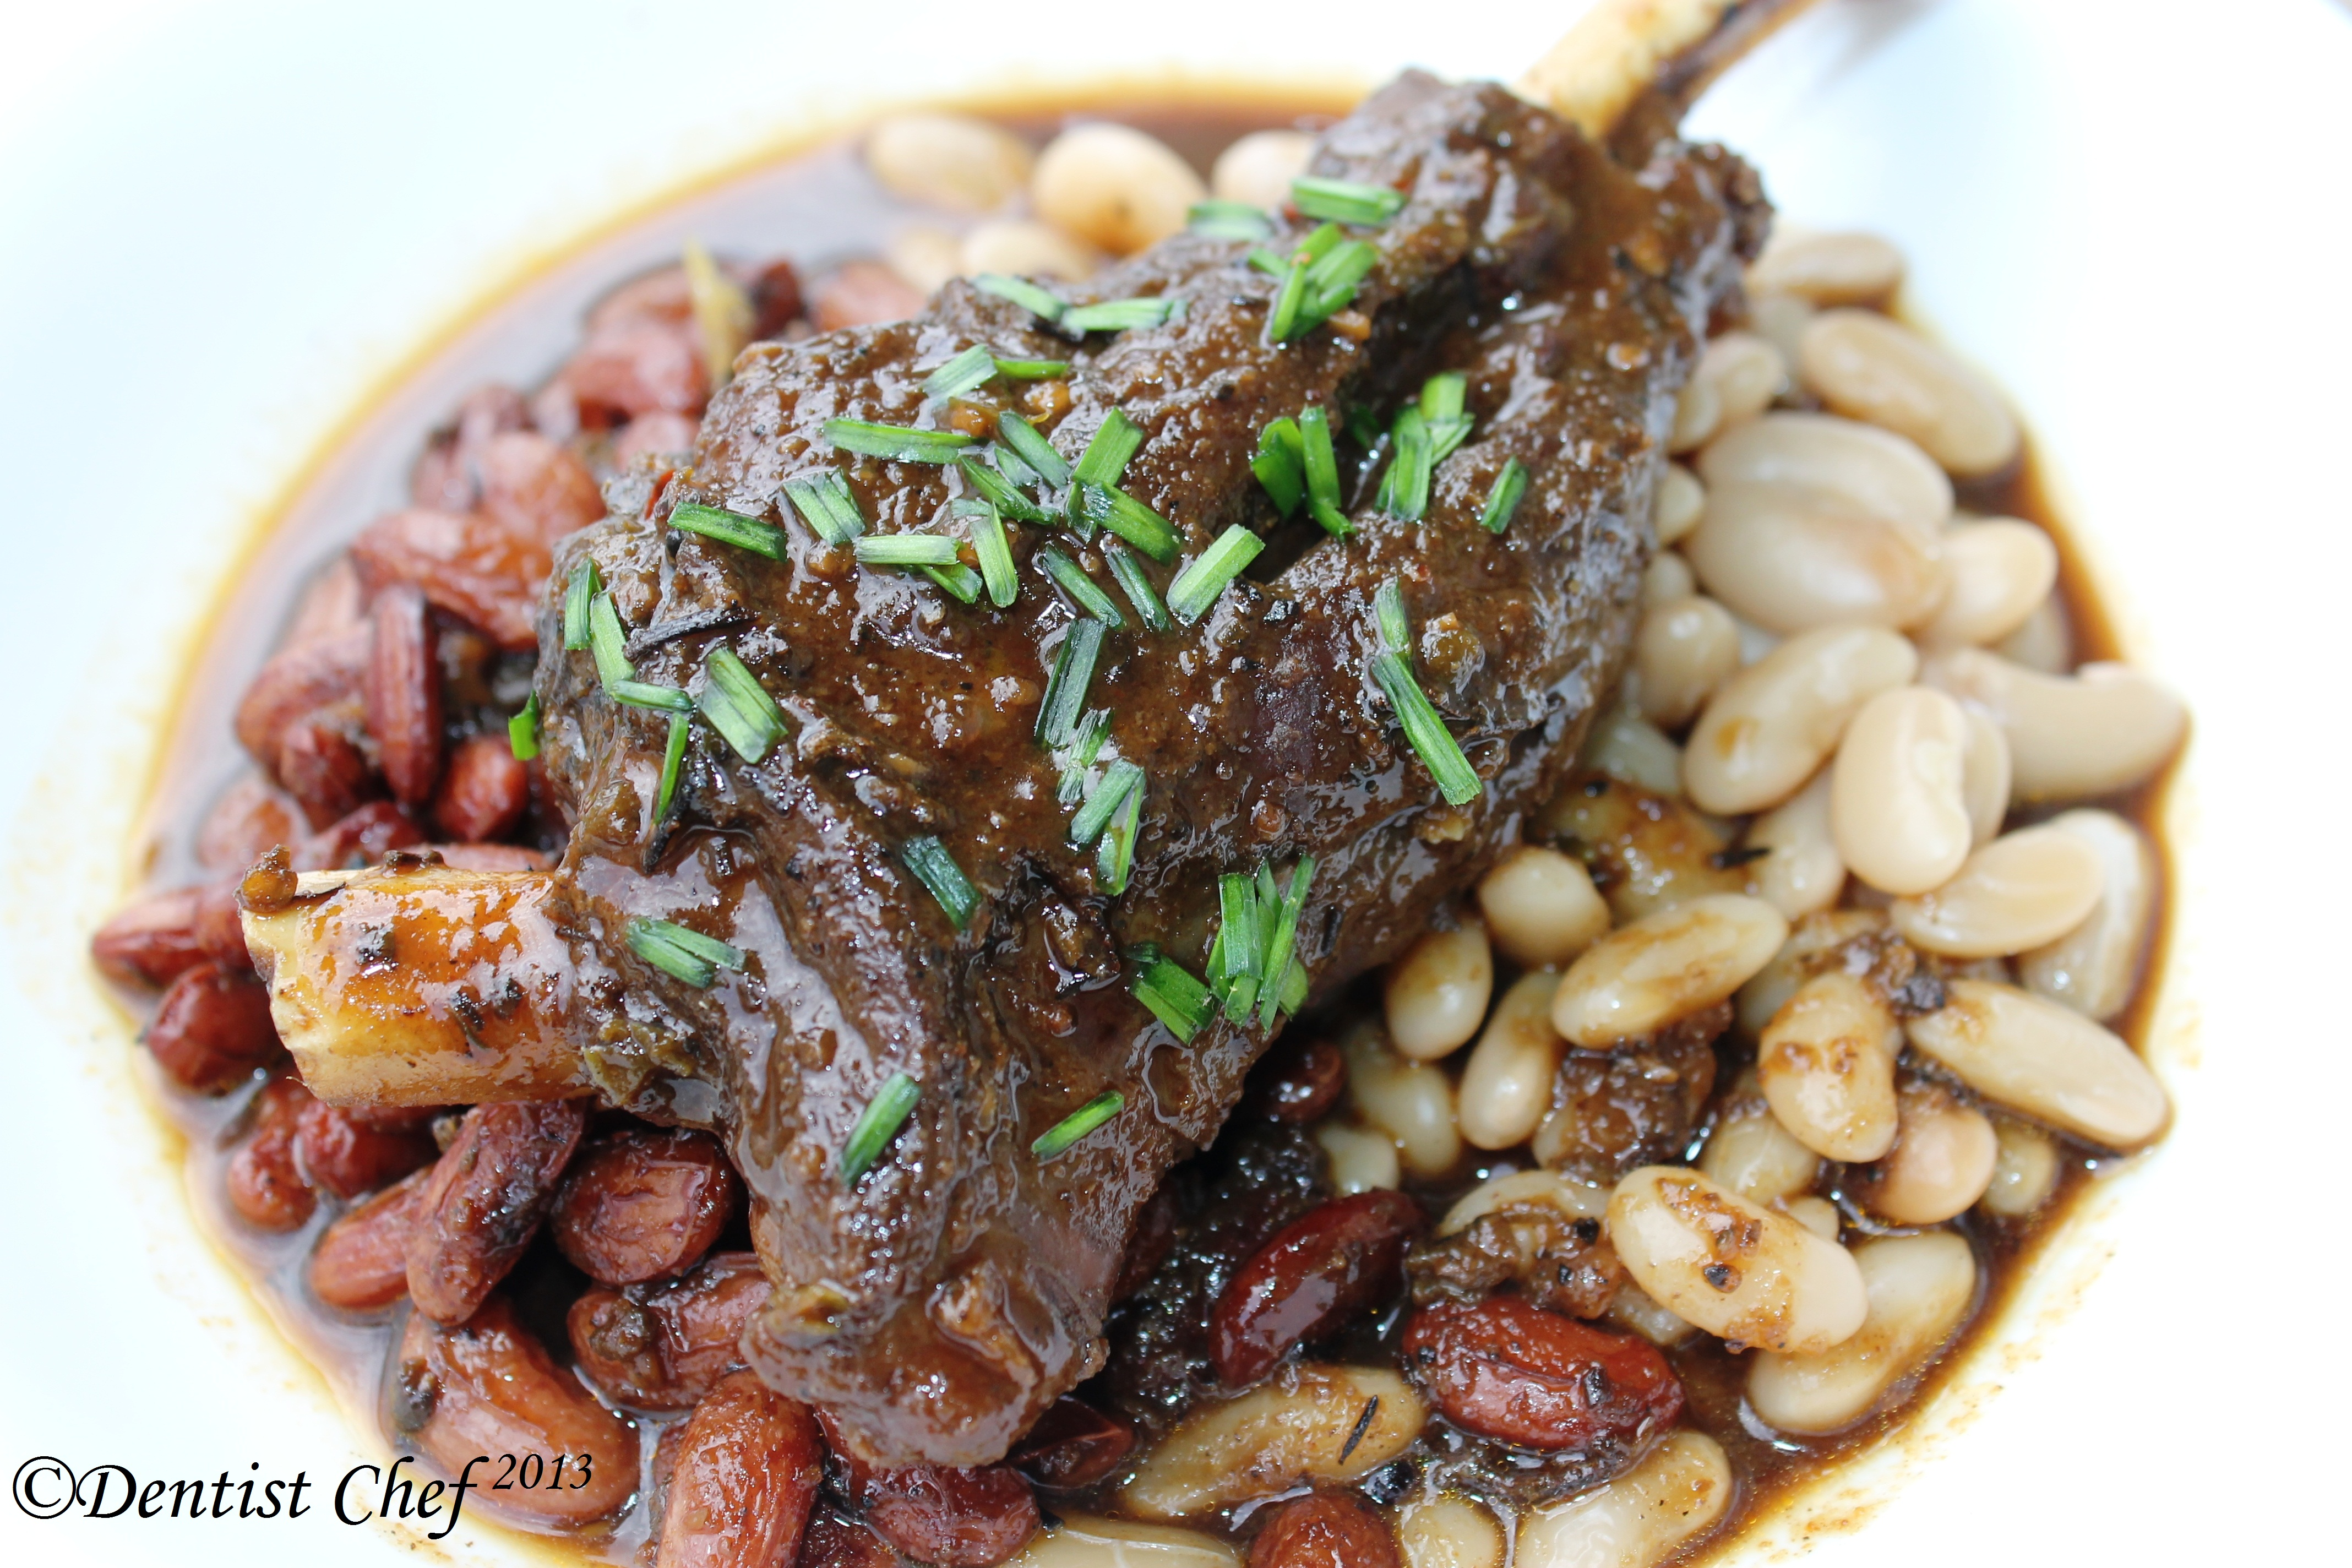 Recipe Braised Lamb Shank with Baked Beans (Red Bean and Navy Bean)